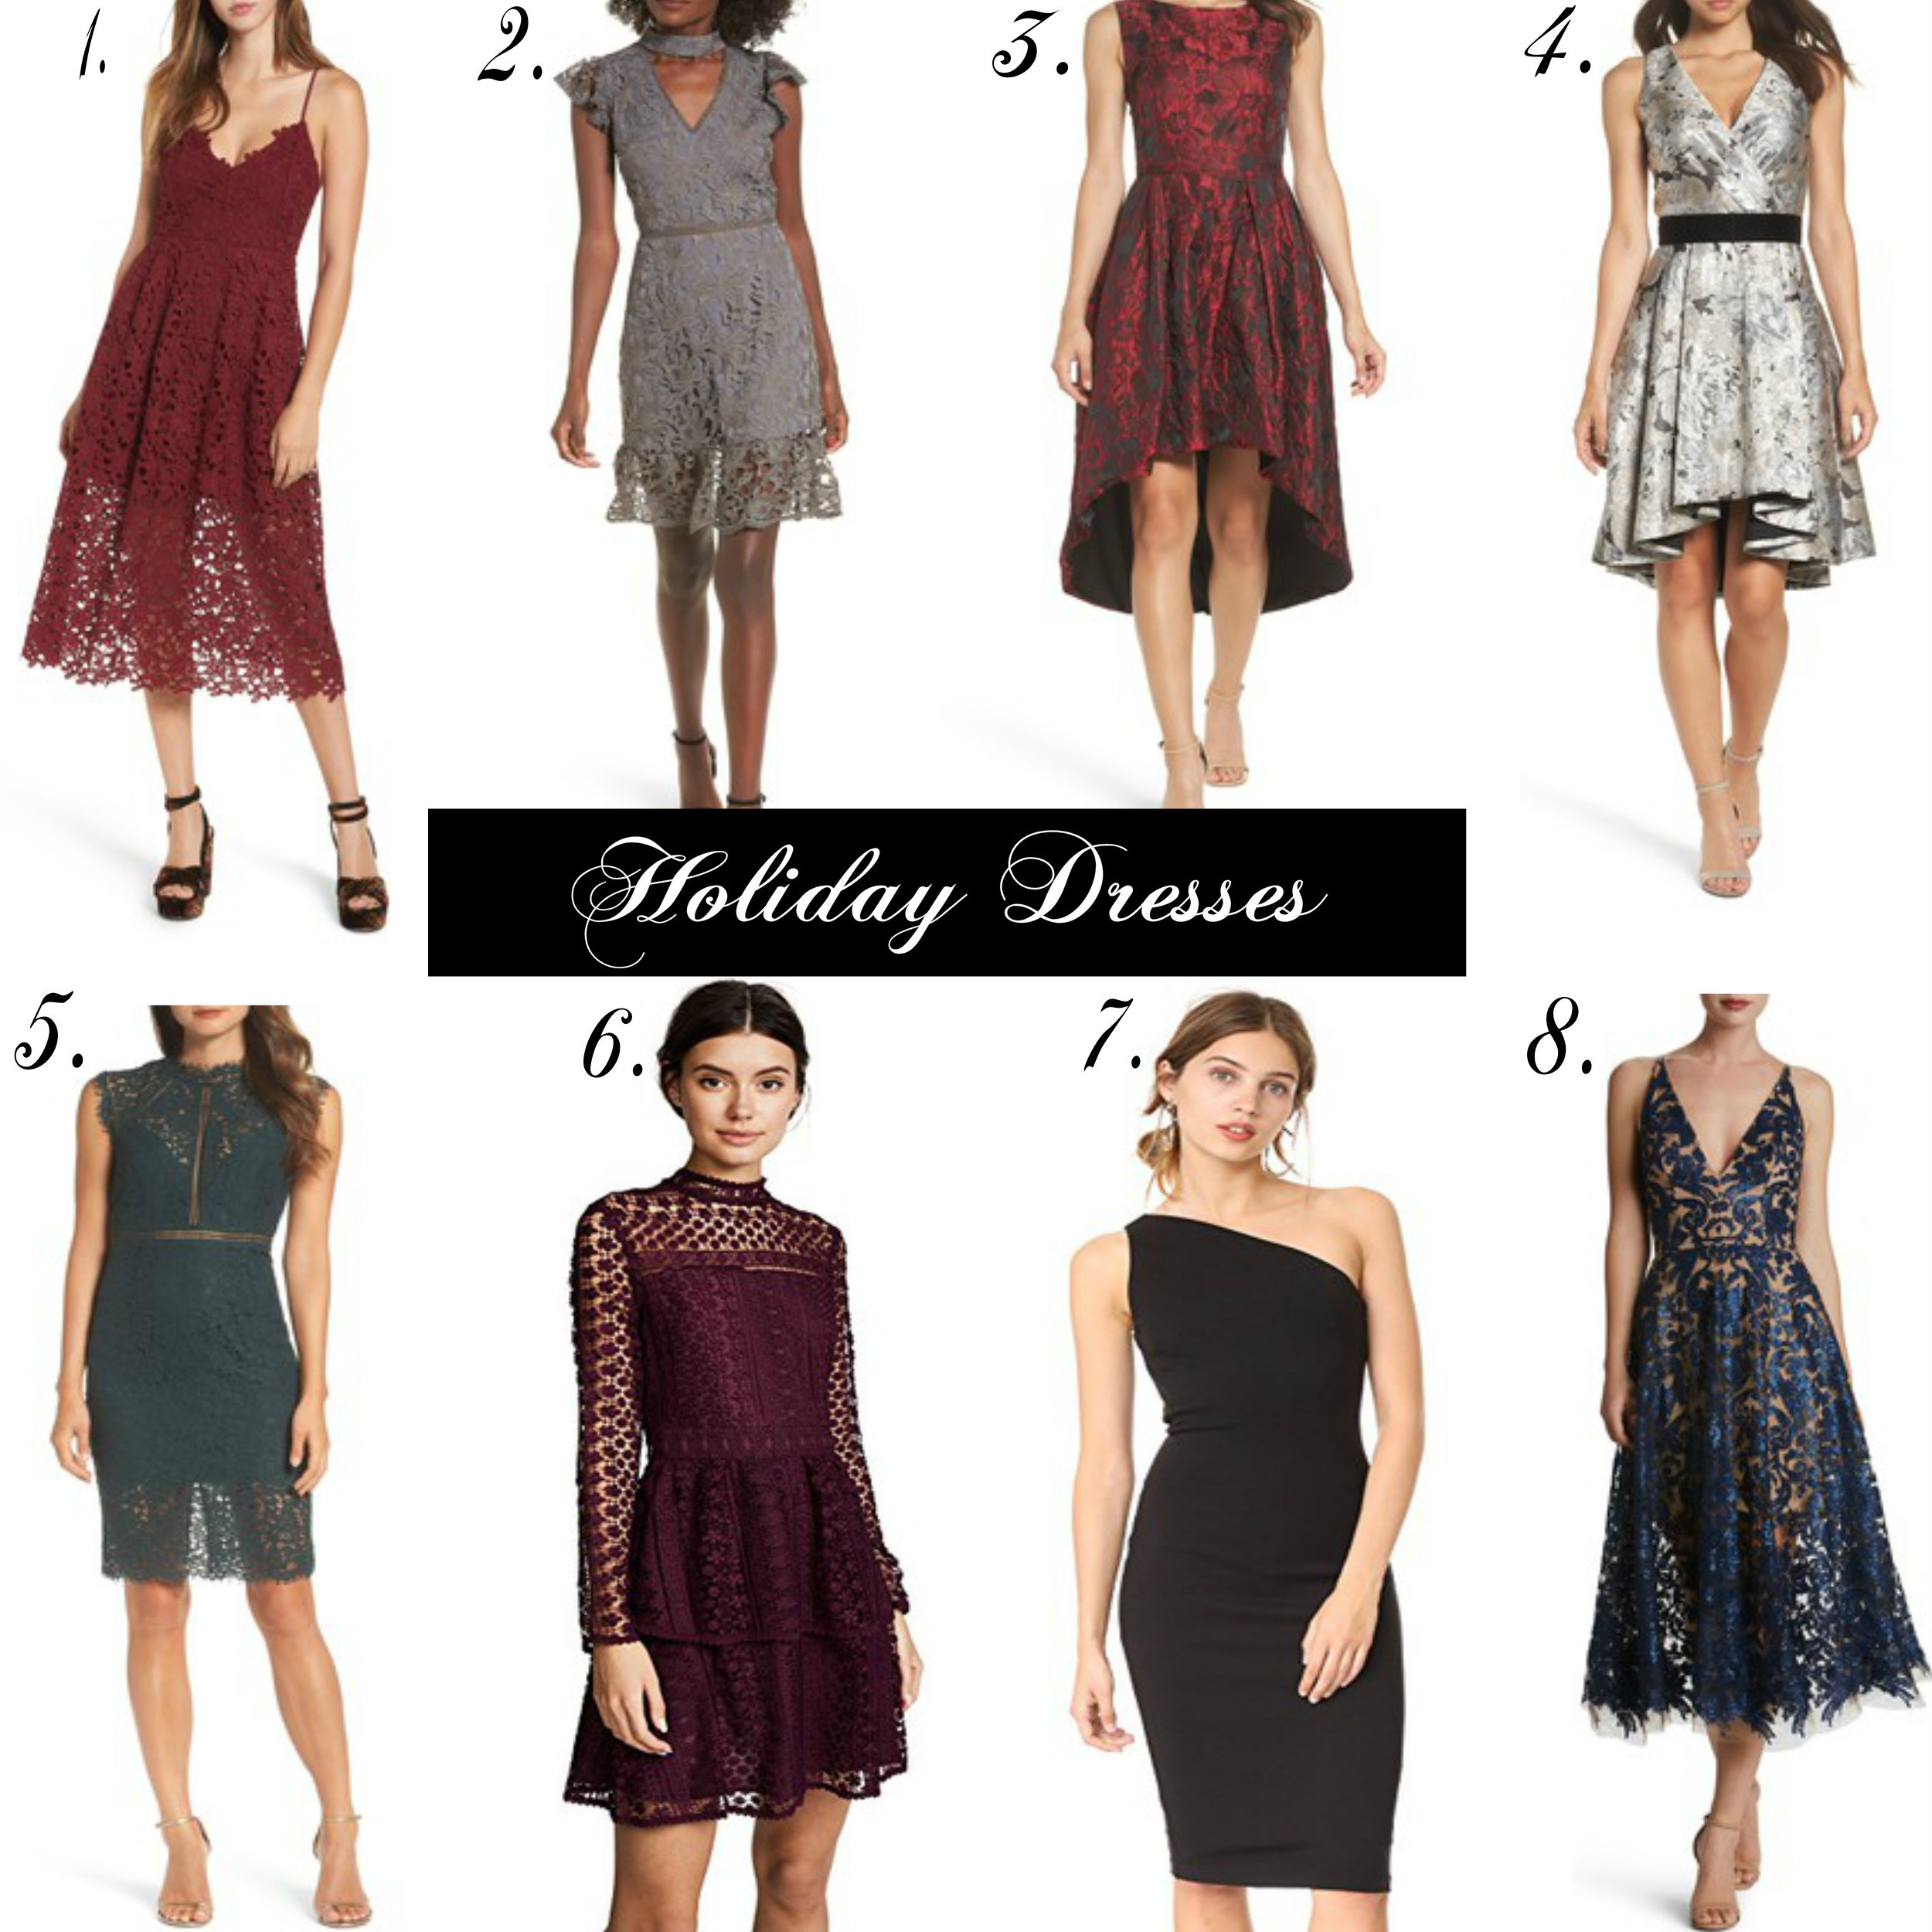 ad3dd035f5102 We always have a few Holiday parties that require dressing up so I'm always  on the hunt for a great dress that will fit the bill for all of them.